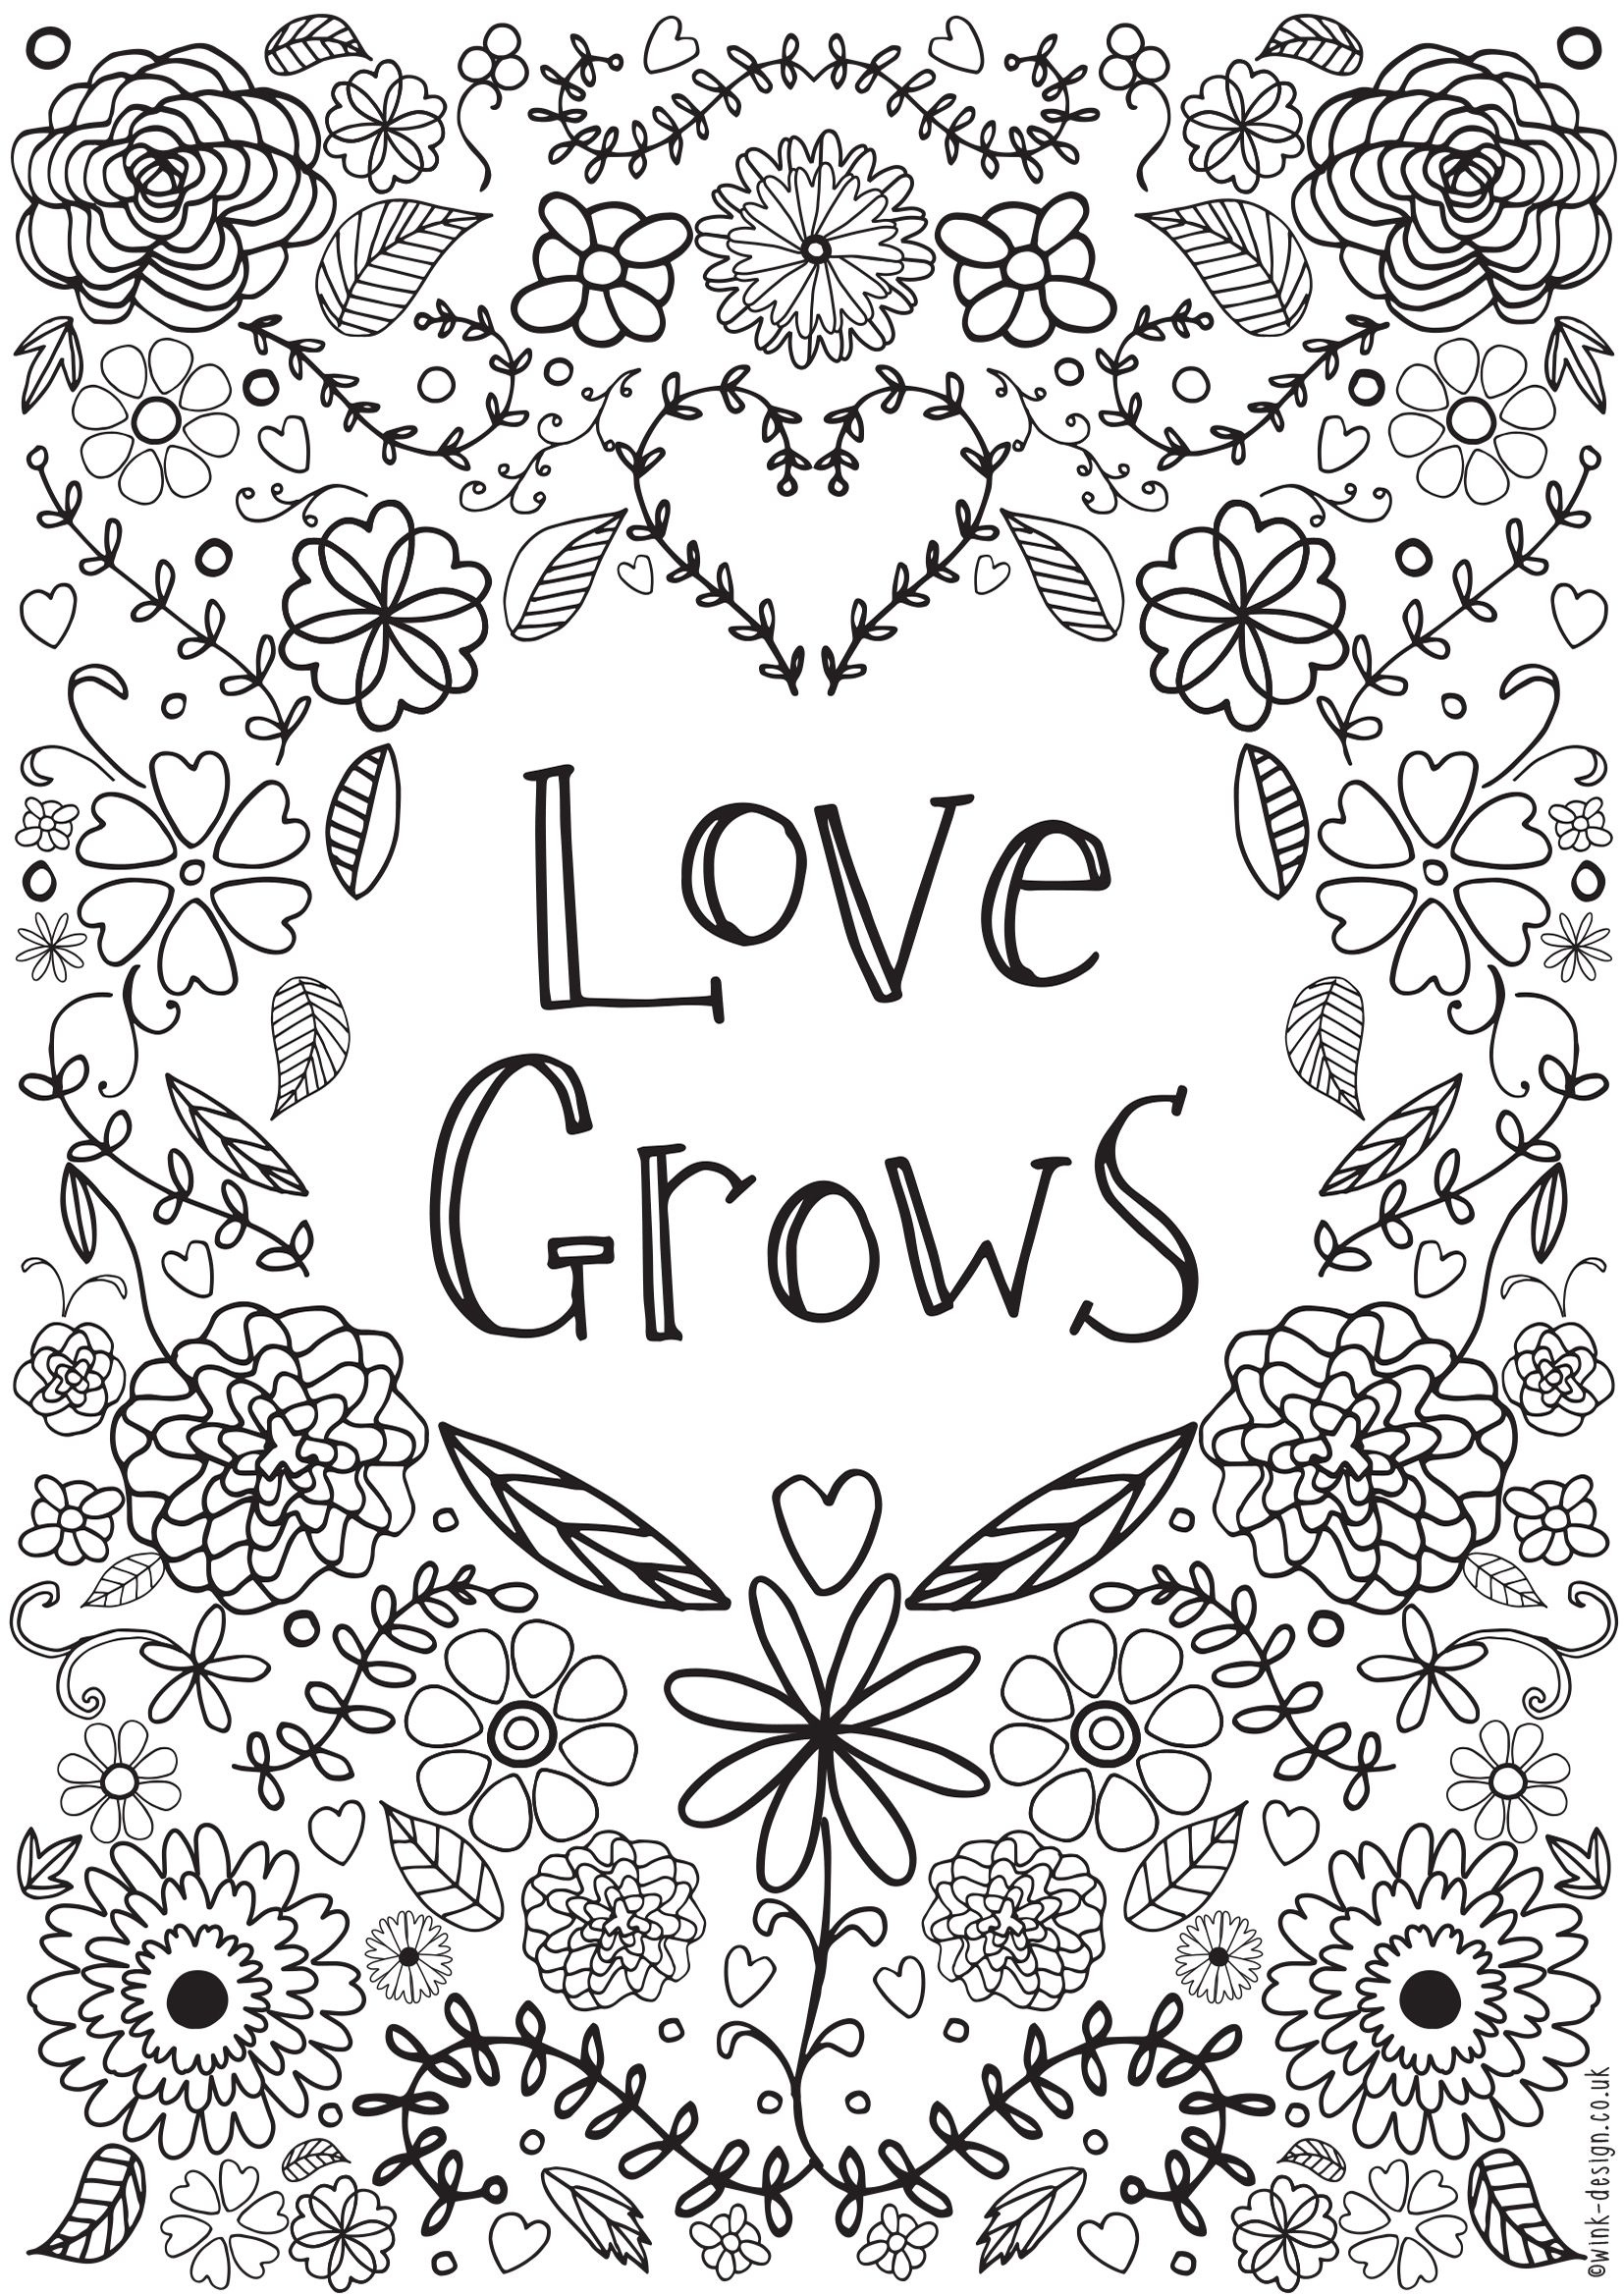 Awesome Free Printable Quote Coloring Pages For Adults   Coloring Pages - Free Printable Inspirational Coloring Pages